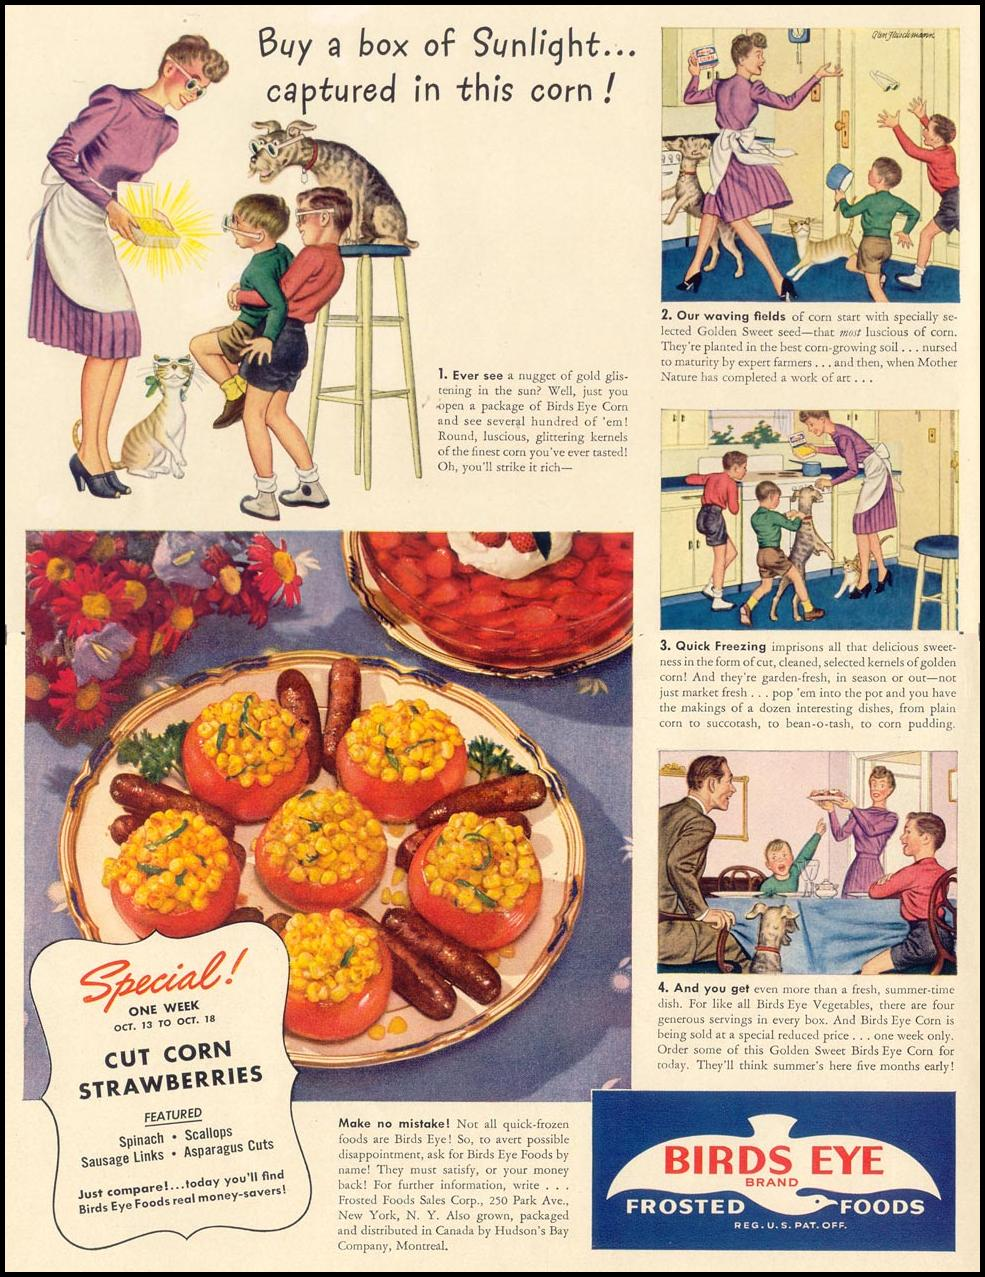 BIRDS EYE FROZEN FOODS LIFE 10/13/1941